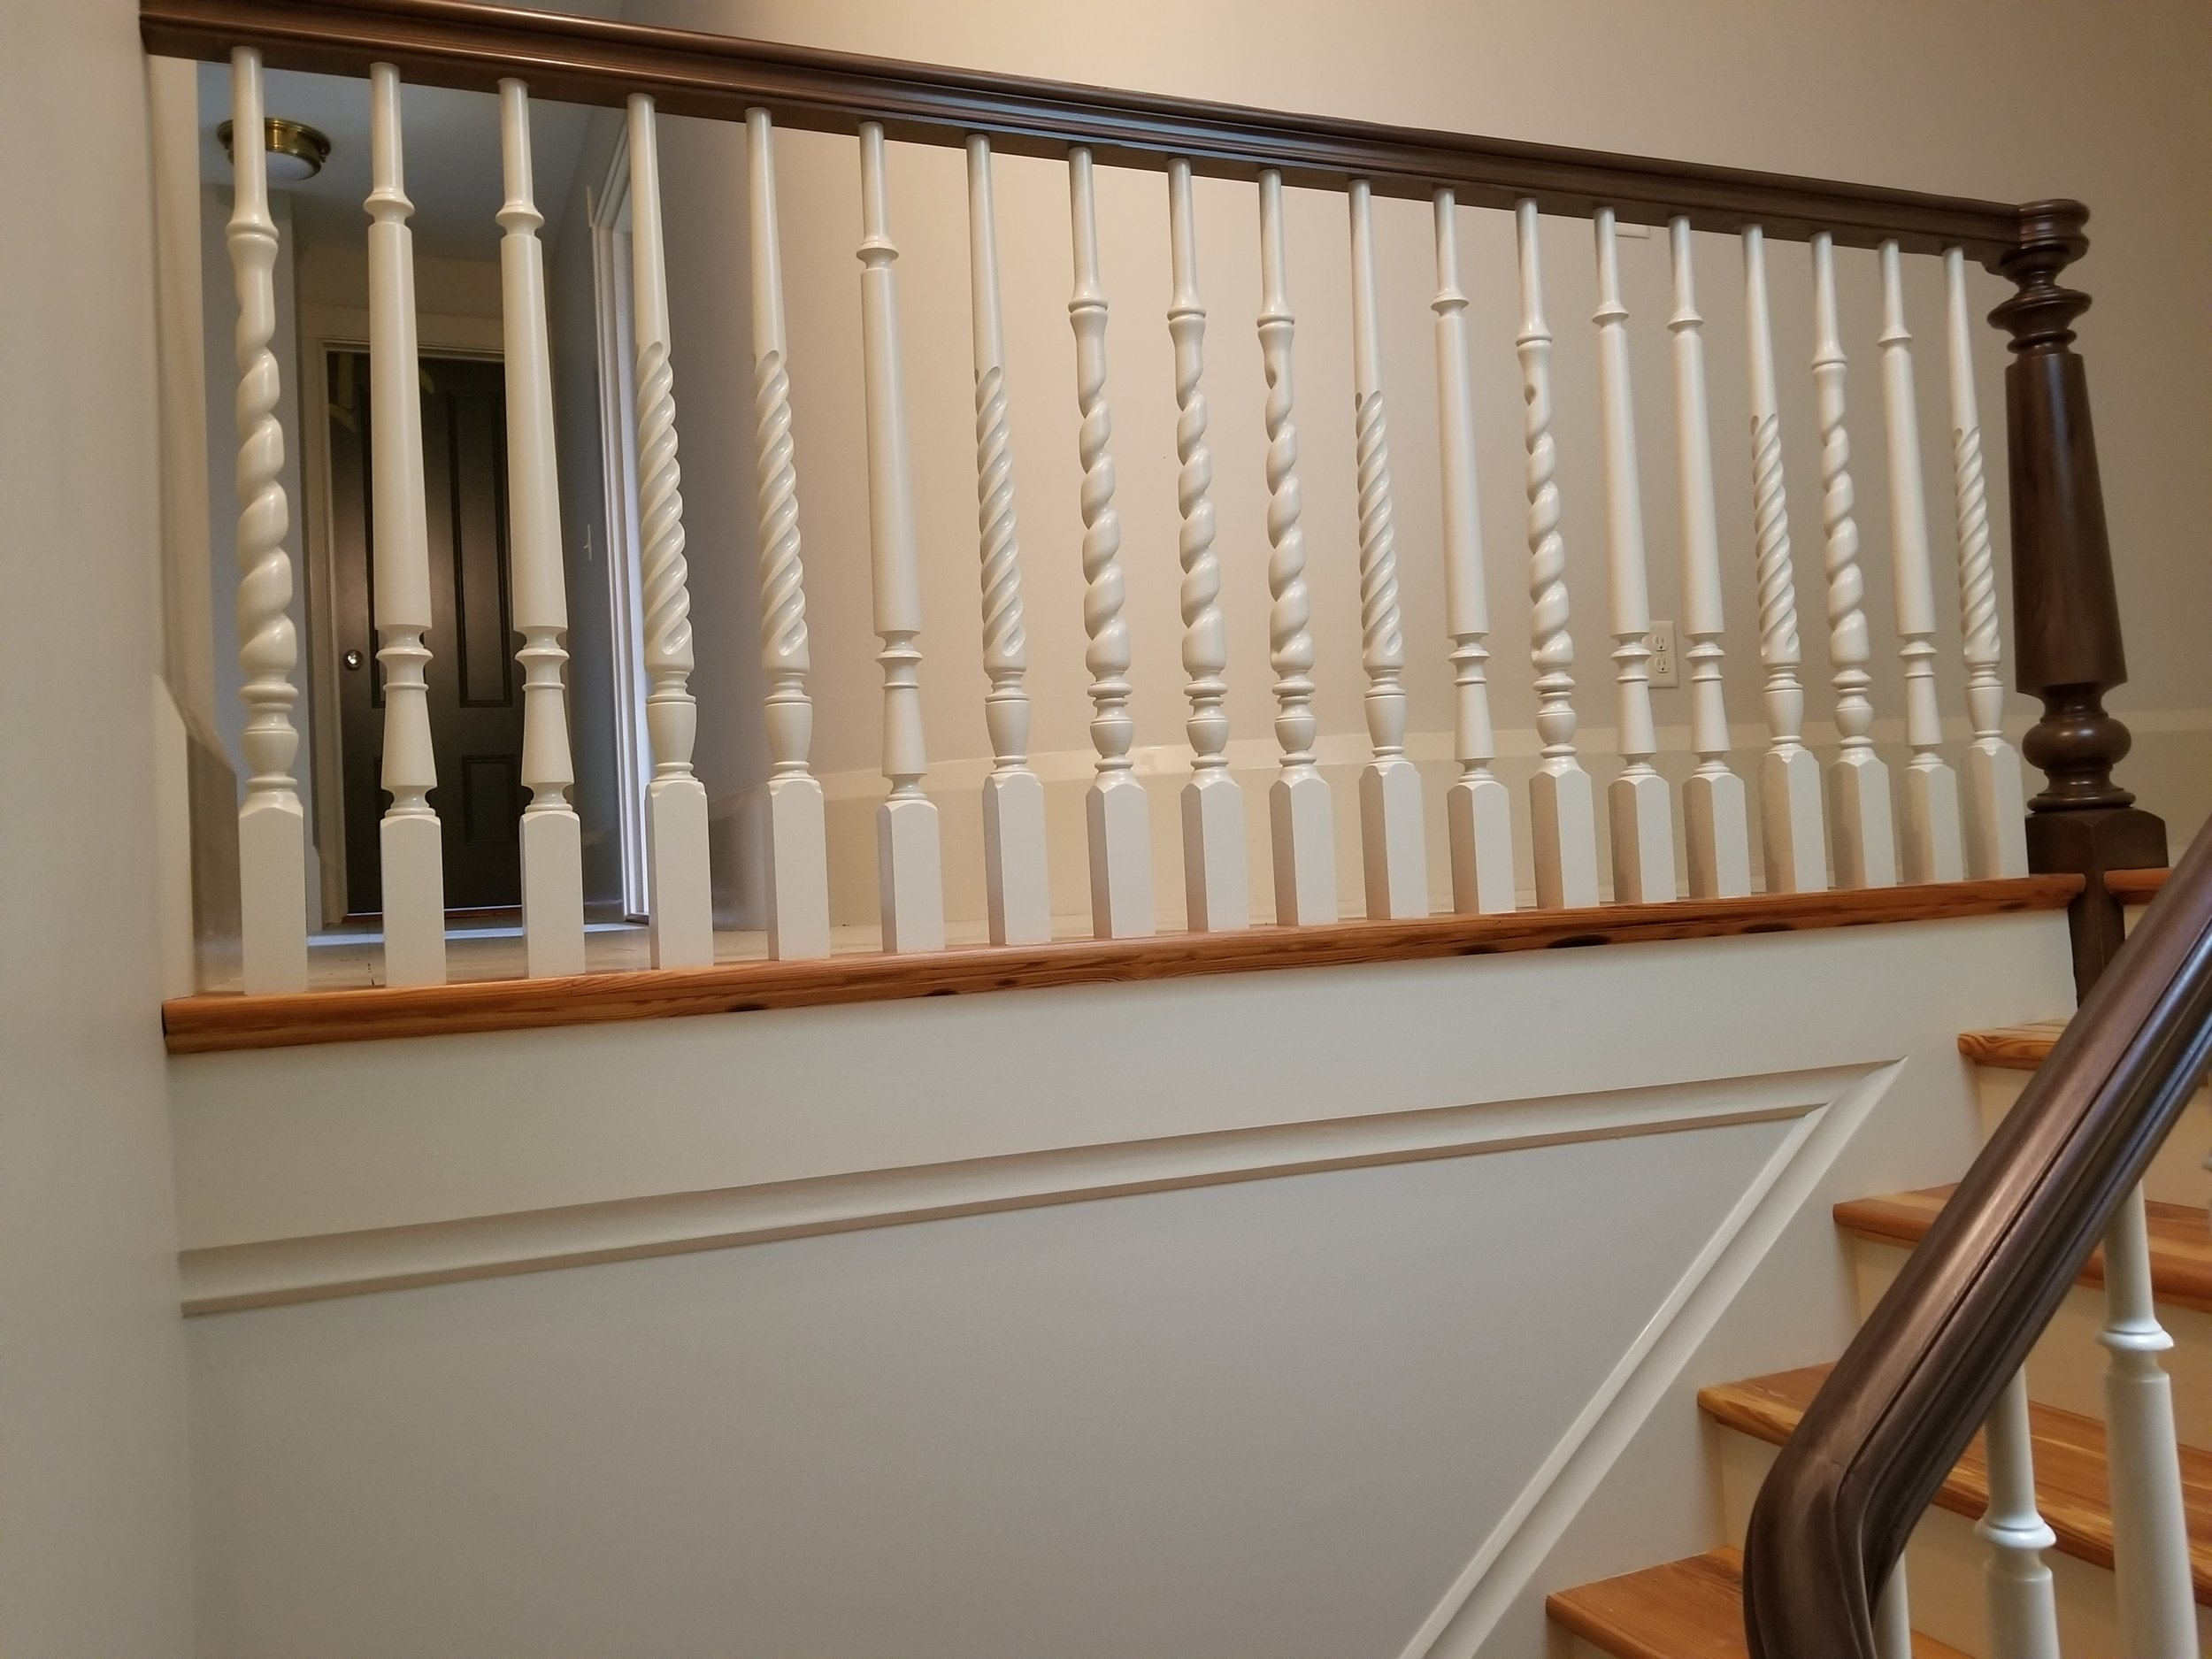 Wood Balusters — Oak Pointe Stair Parts And More   Wood Balusters For Sale   Rail Hardware   Wrought Iron Baluster   Deck Railing Spindles   Stair Treads   Stair Parts